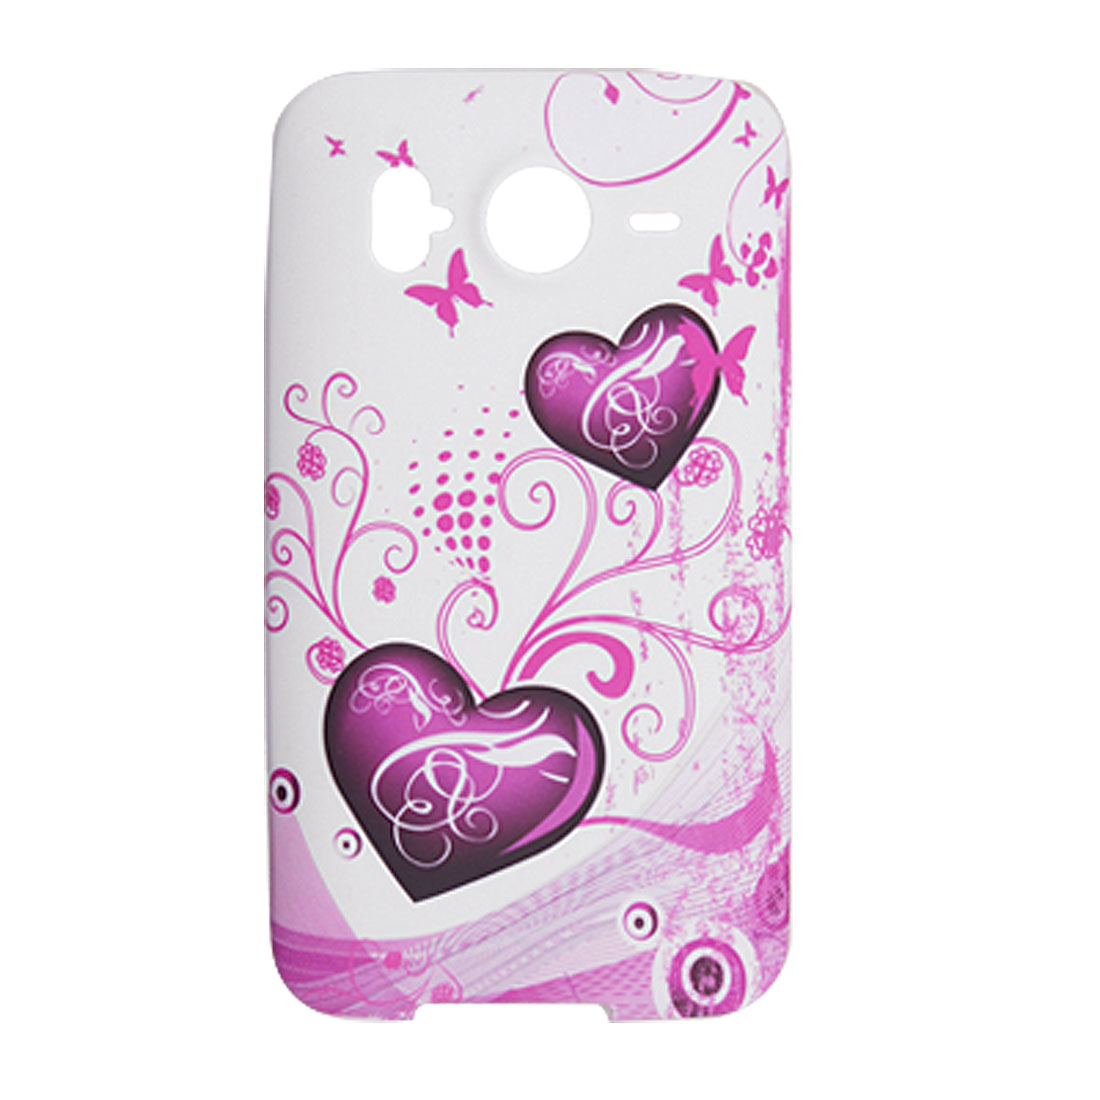 Fuchsia Heart Butterfly Prints Soft Plastic Case for HTC Desire HD